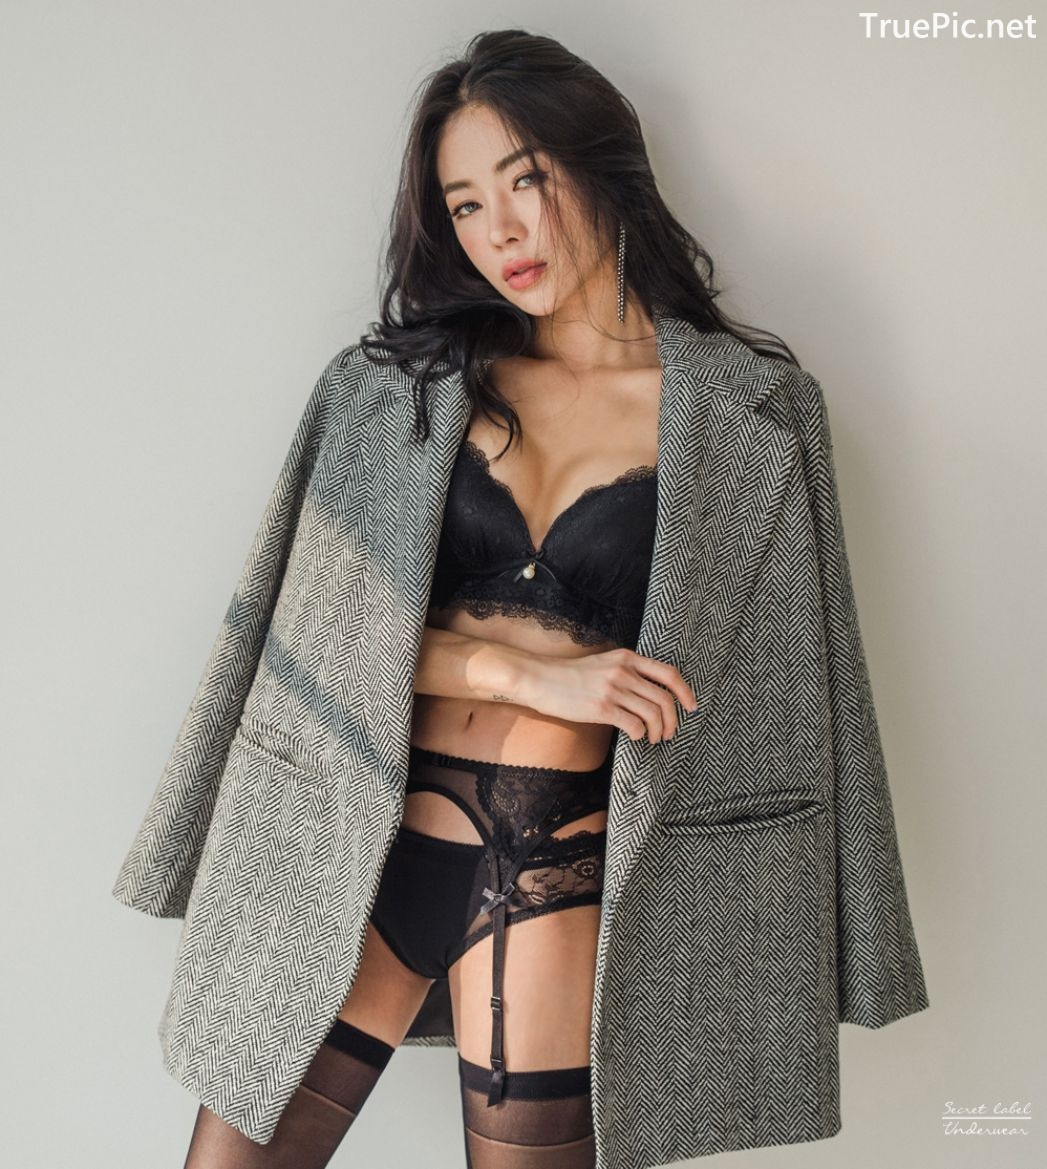 Image-Korean-Fashion-Model-An-Seo-Rin-7-Lingerie-Set-For-A-Week-TruePic.net- Picture-7